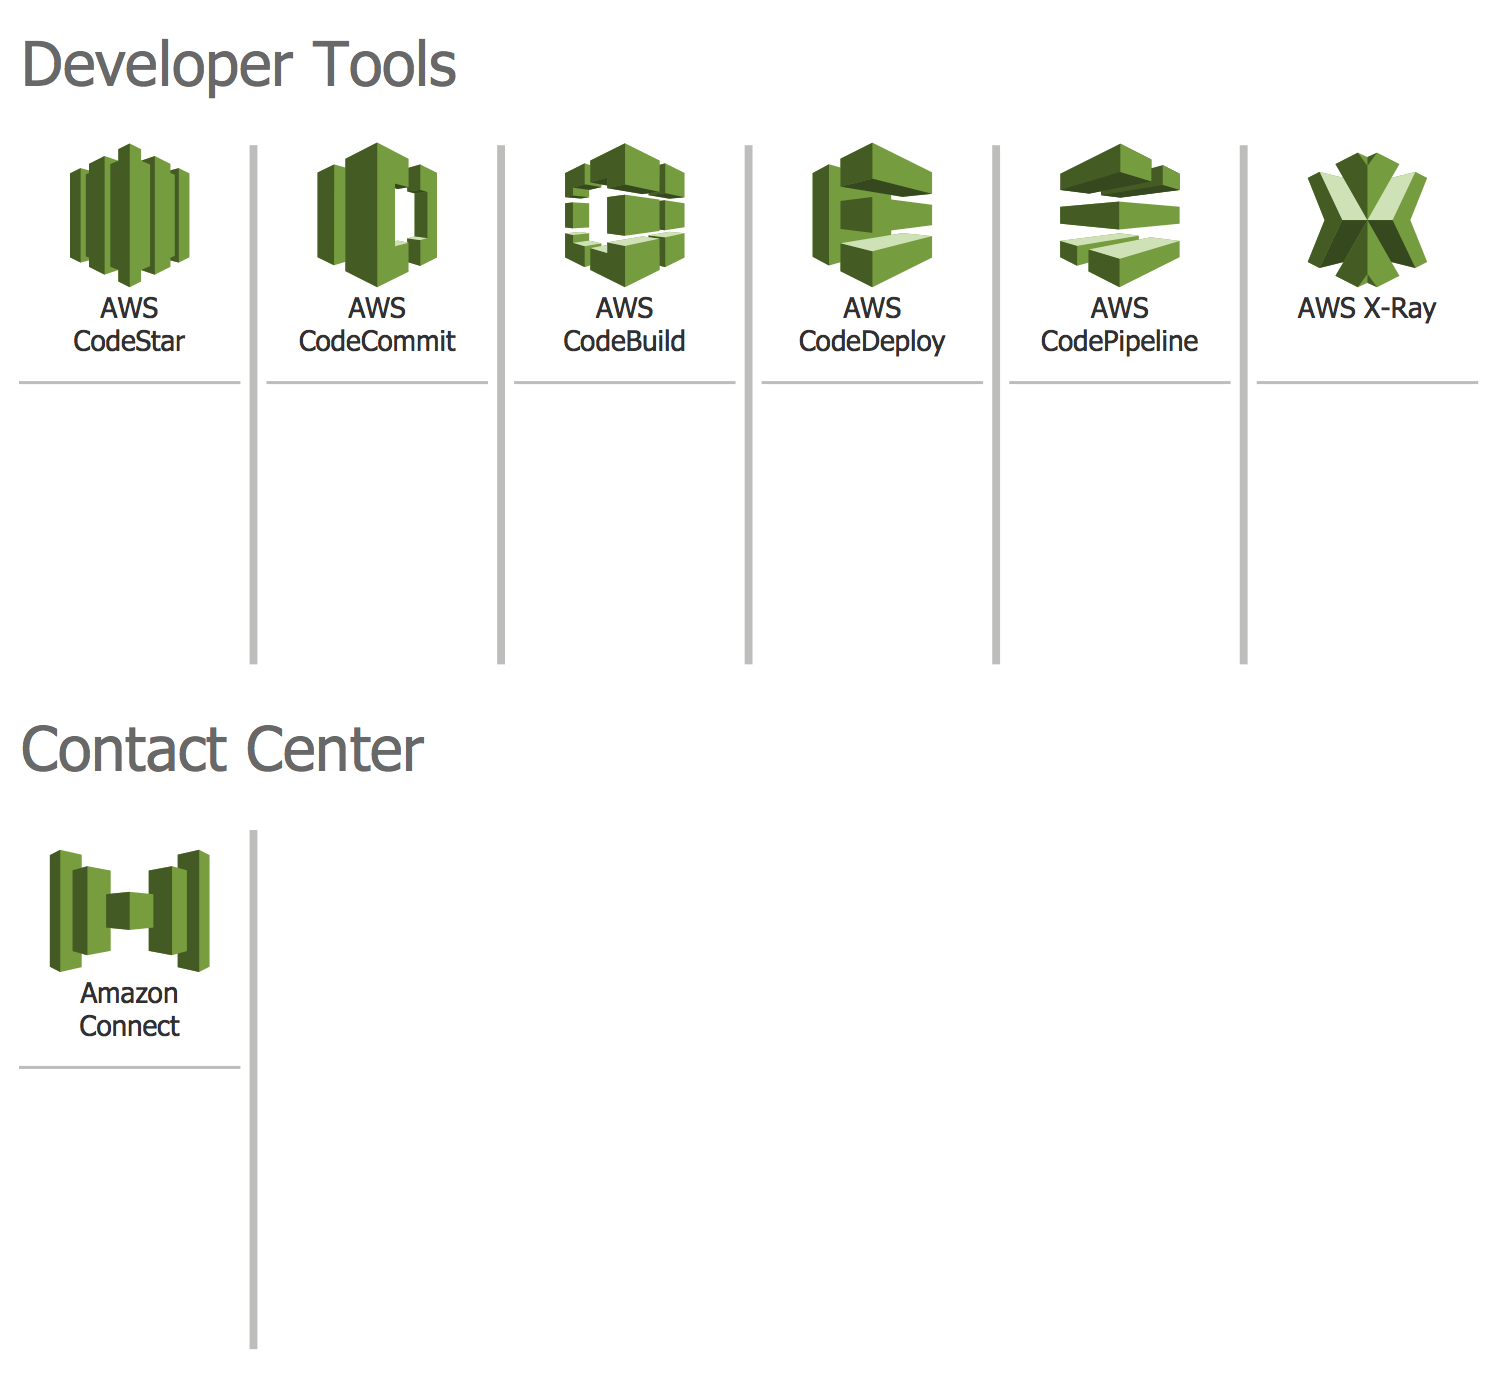 Design Elements — AWS Developer Tools and Contact Center